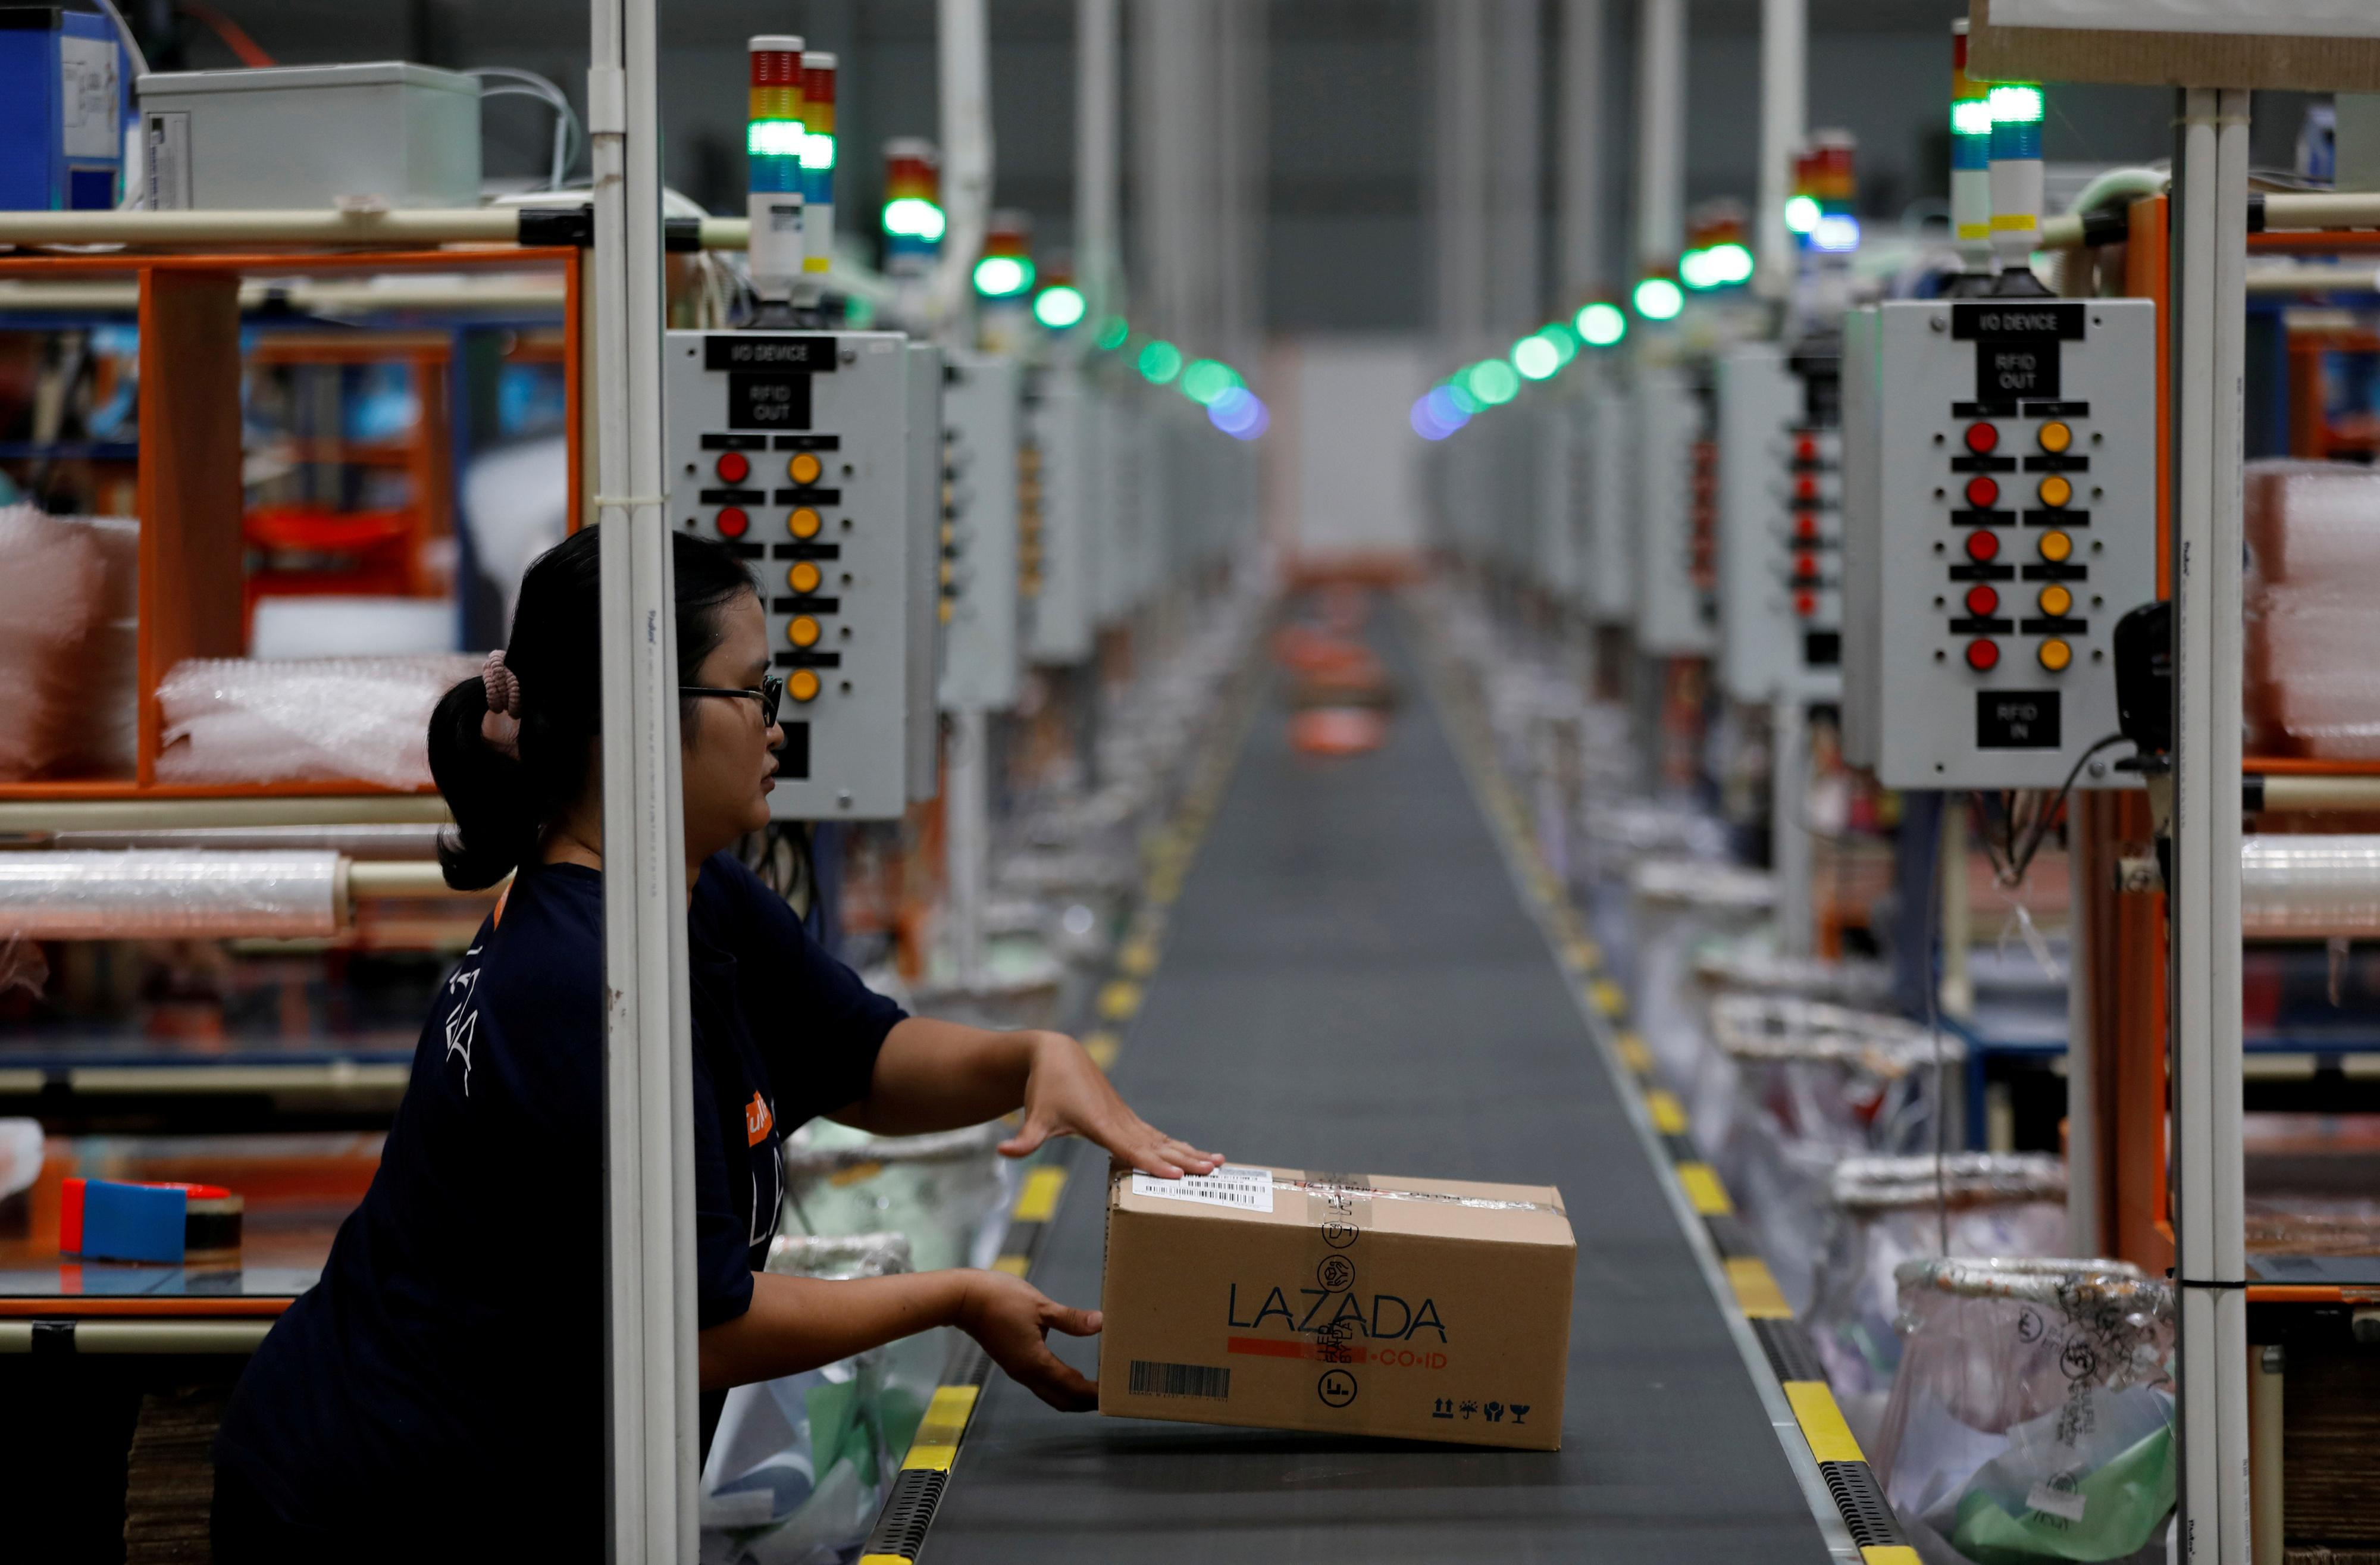 Lazada, Alibaba's Southeast Asian arm, appoints its third CEO in three years